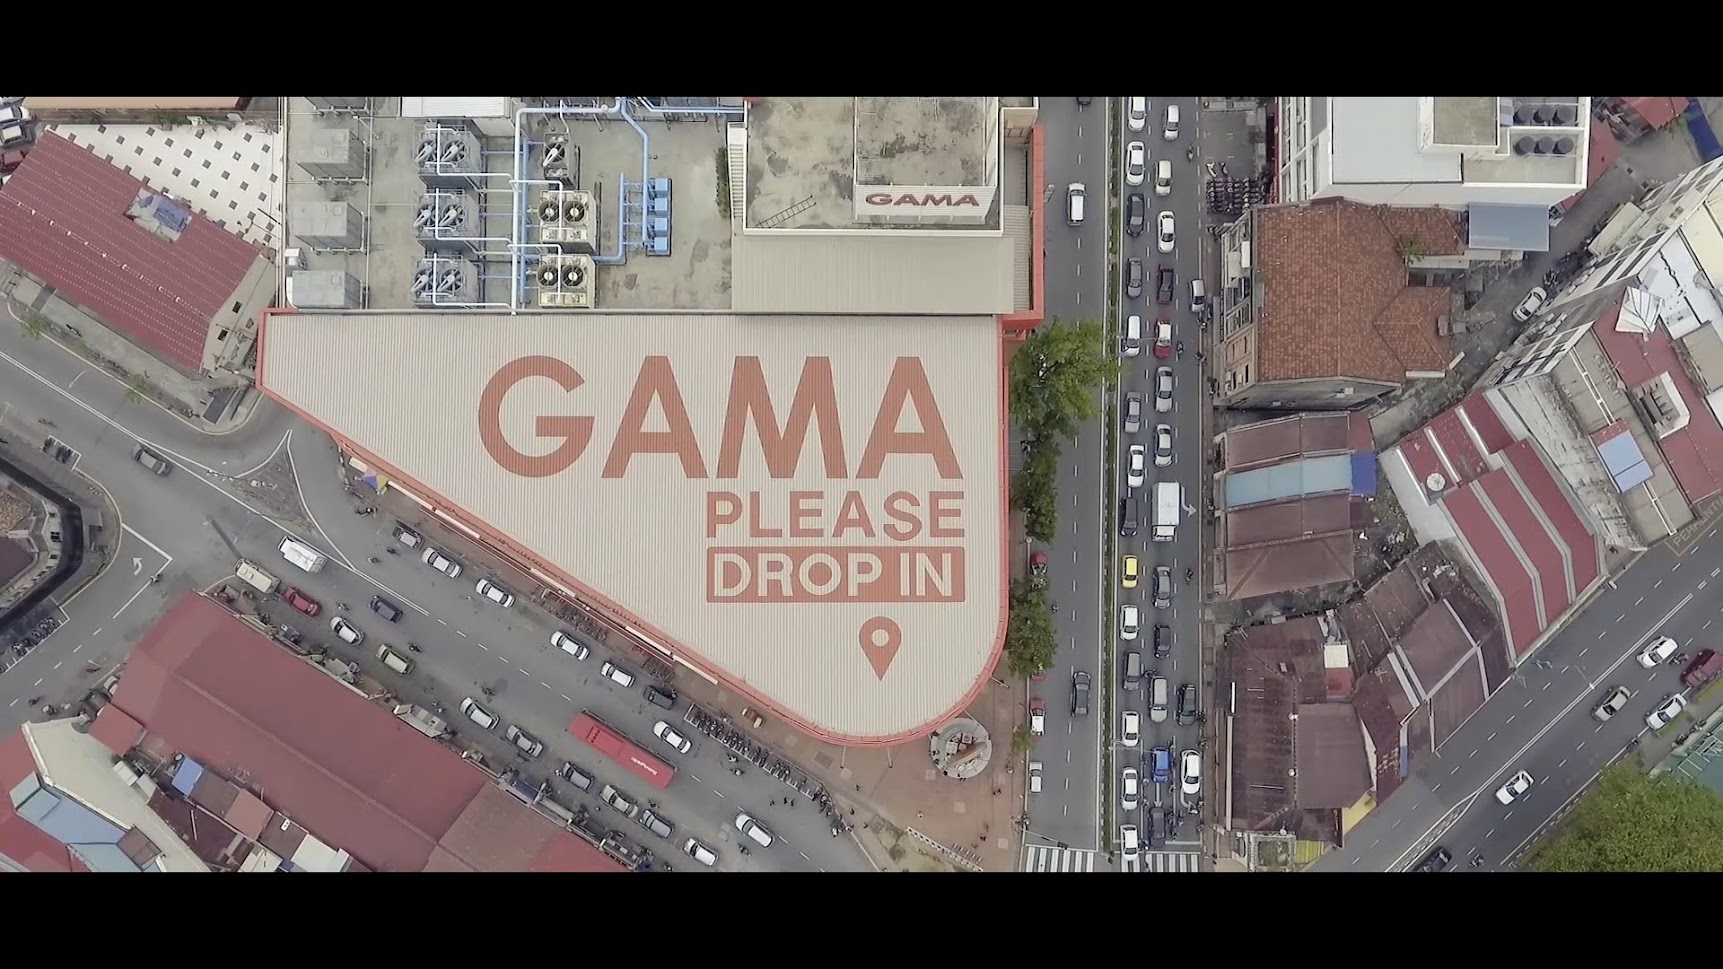 Gama 50th Anniversary Event Videography